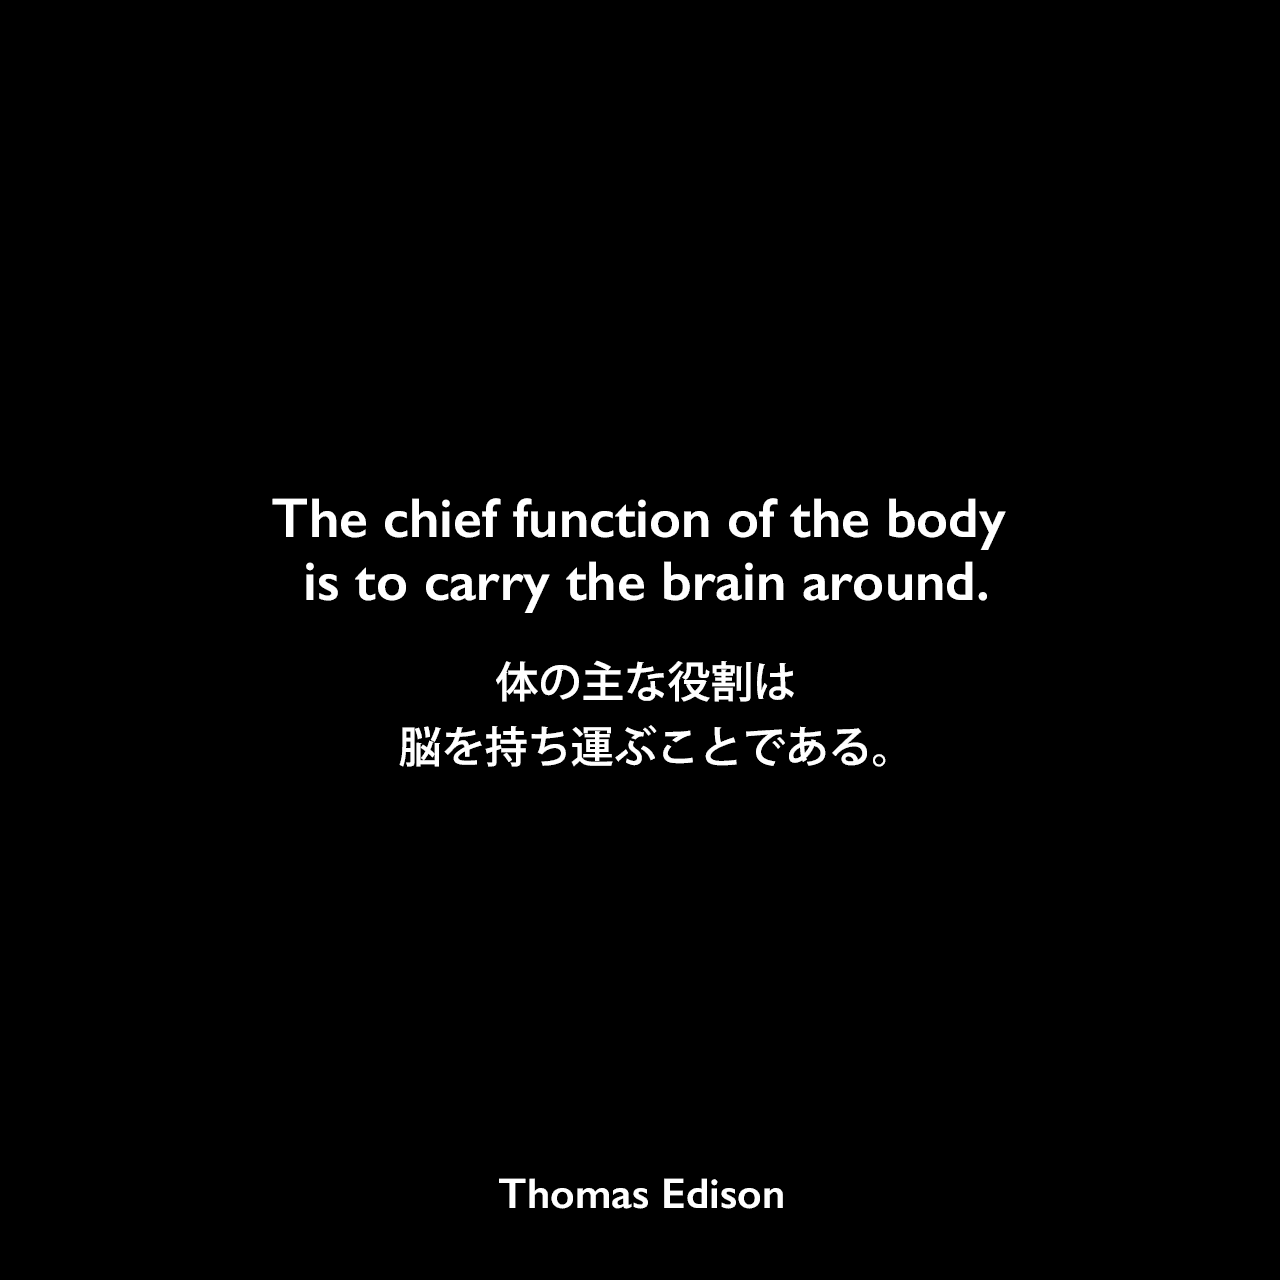 The chief function of the body is to carry the brain around.体の主な役割は、脳を持ち運ぶことである。Thomas Edison